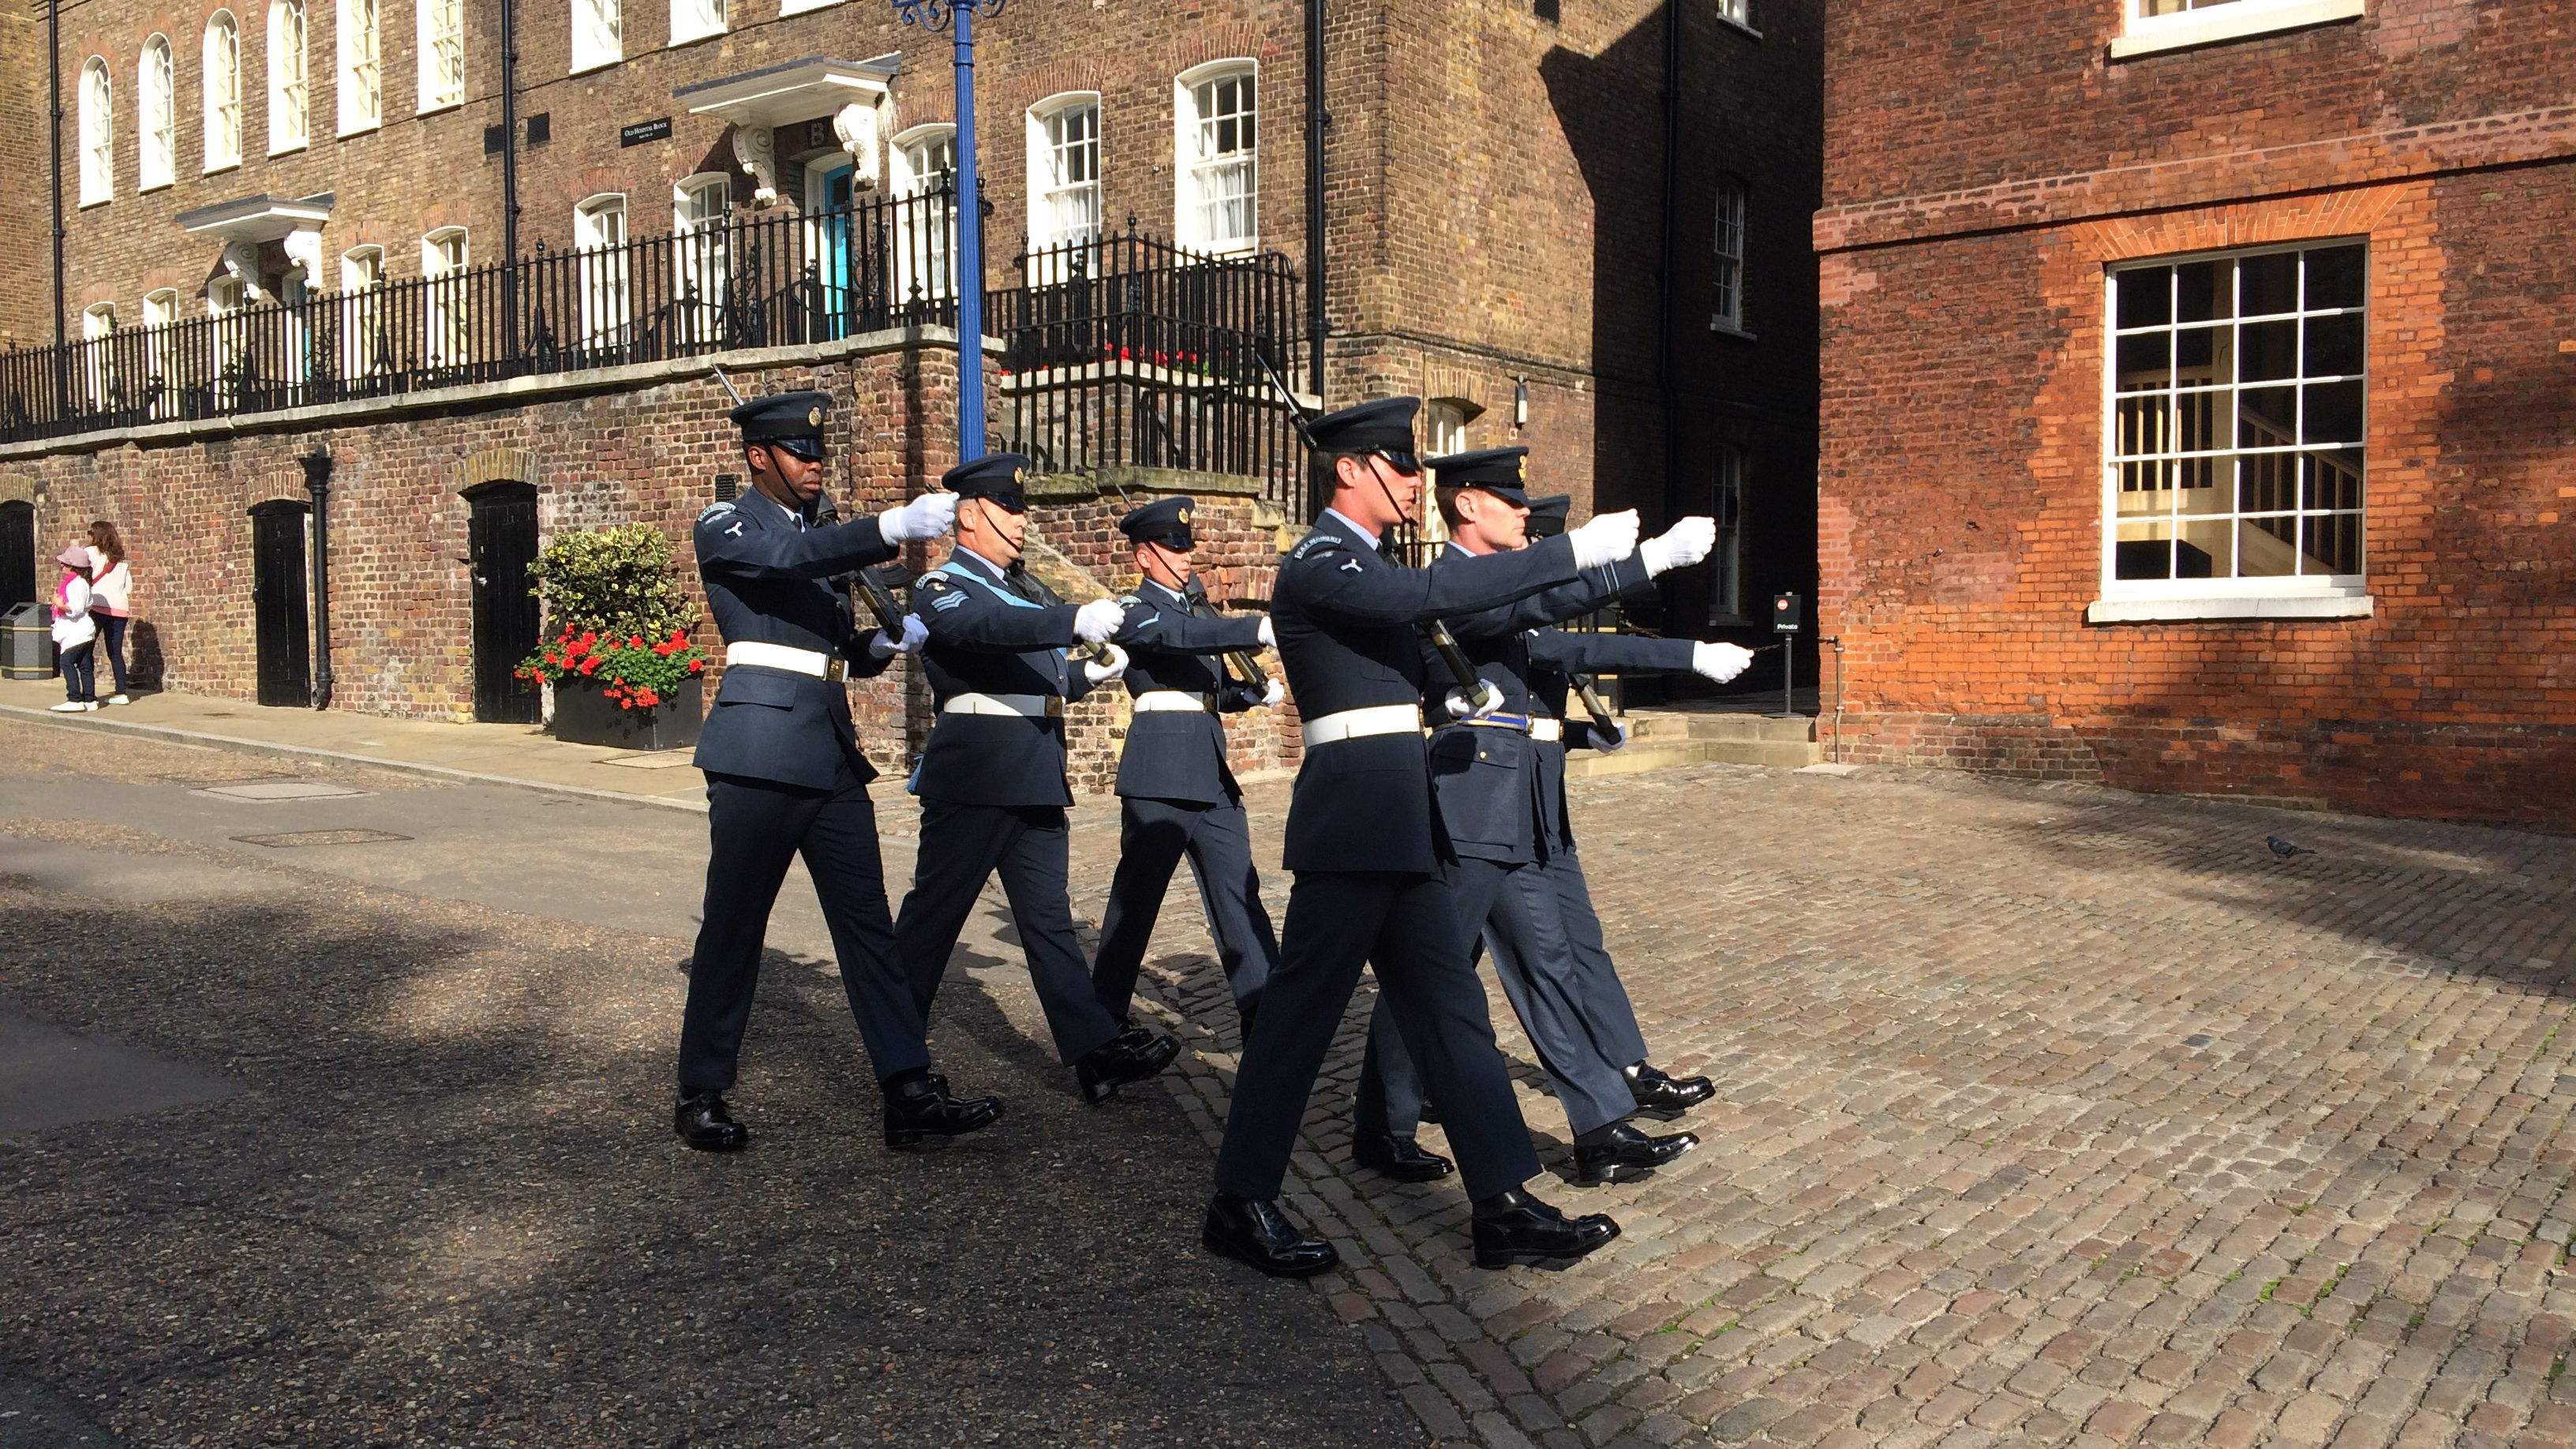 Six officers march in formation on the streets of London